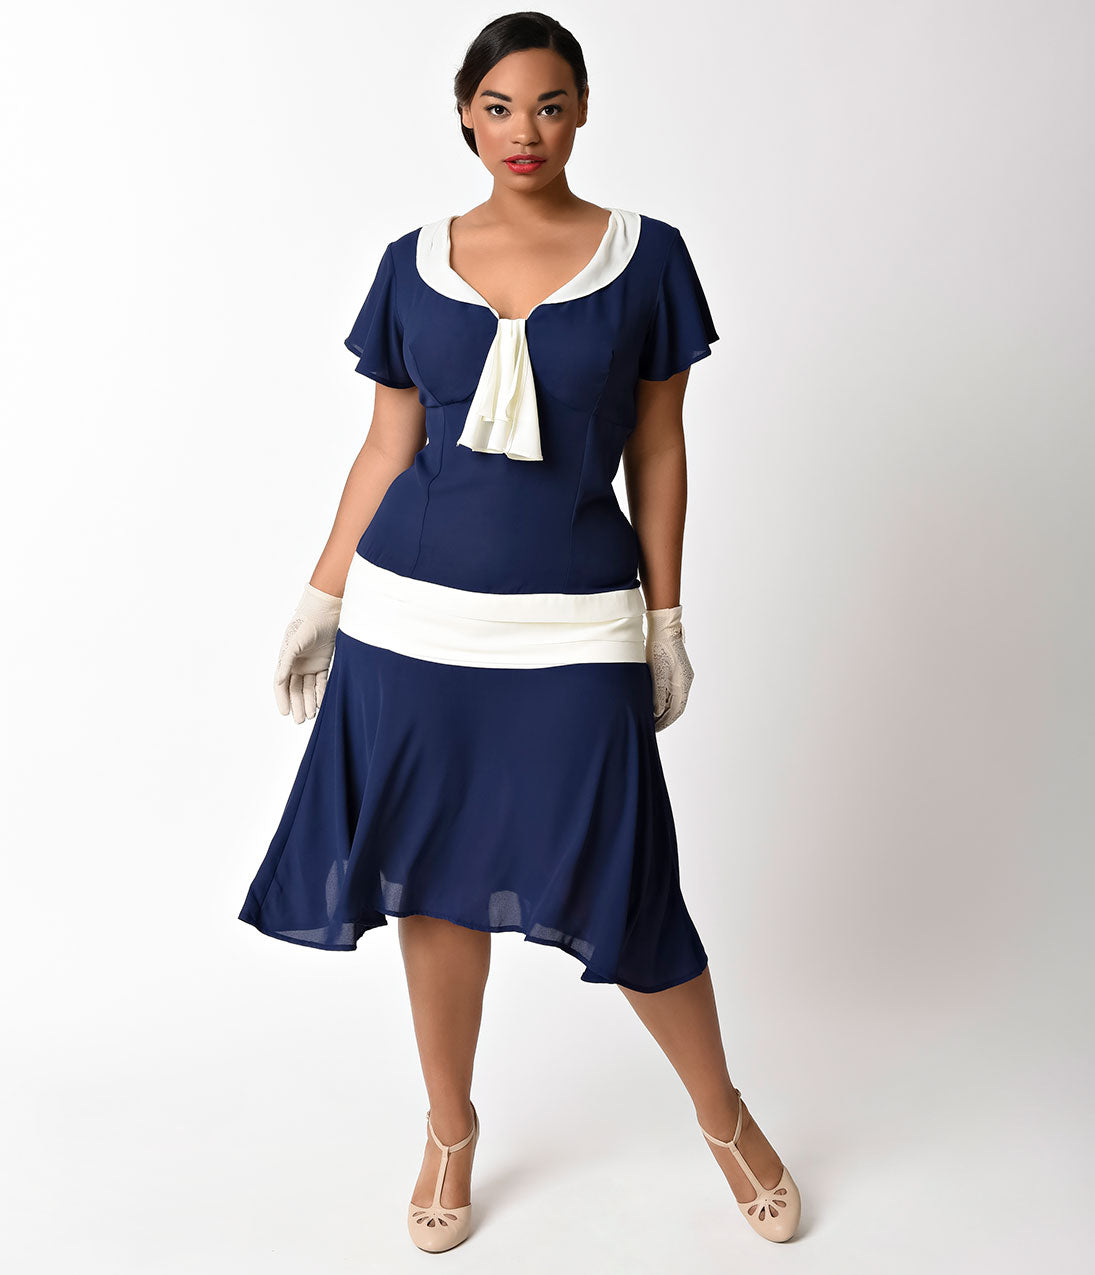 1920s Afternoon Dresses, Tea Dresses Unique Vintage Plus Size 1920S Style Navy Blue  Ivory Wilshire Chiffon Flapper Day Dress $88.00 AT vintagedancer.com